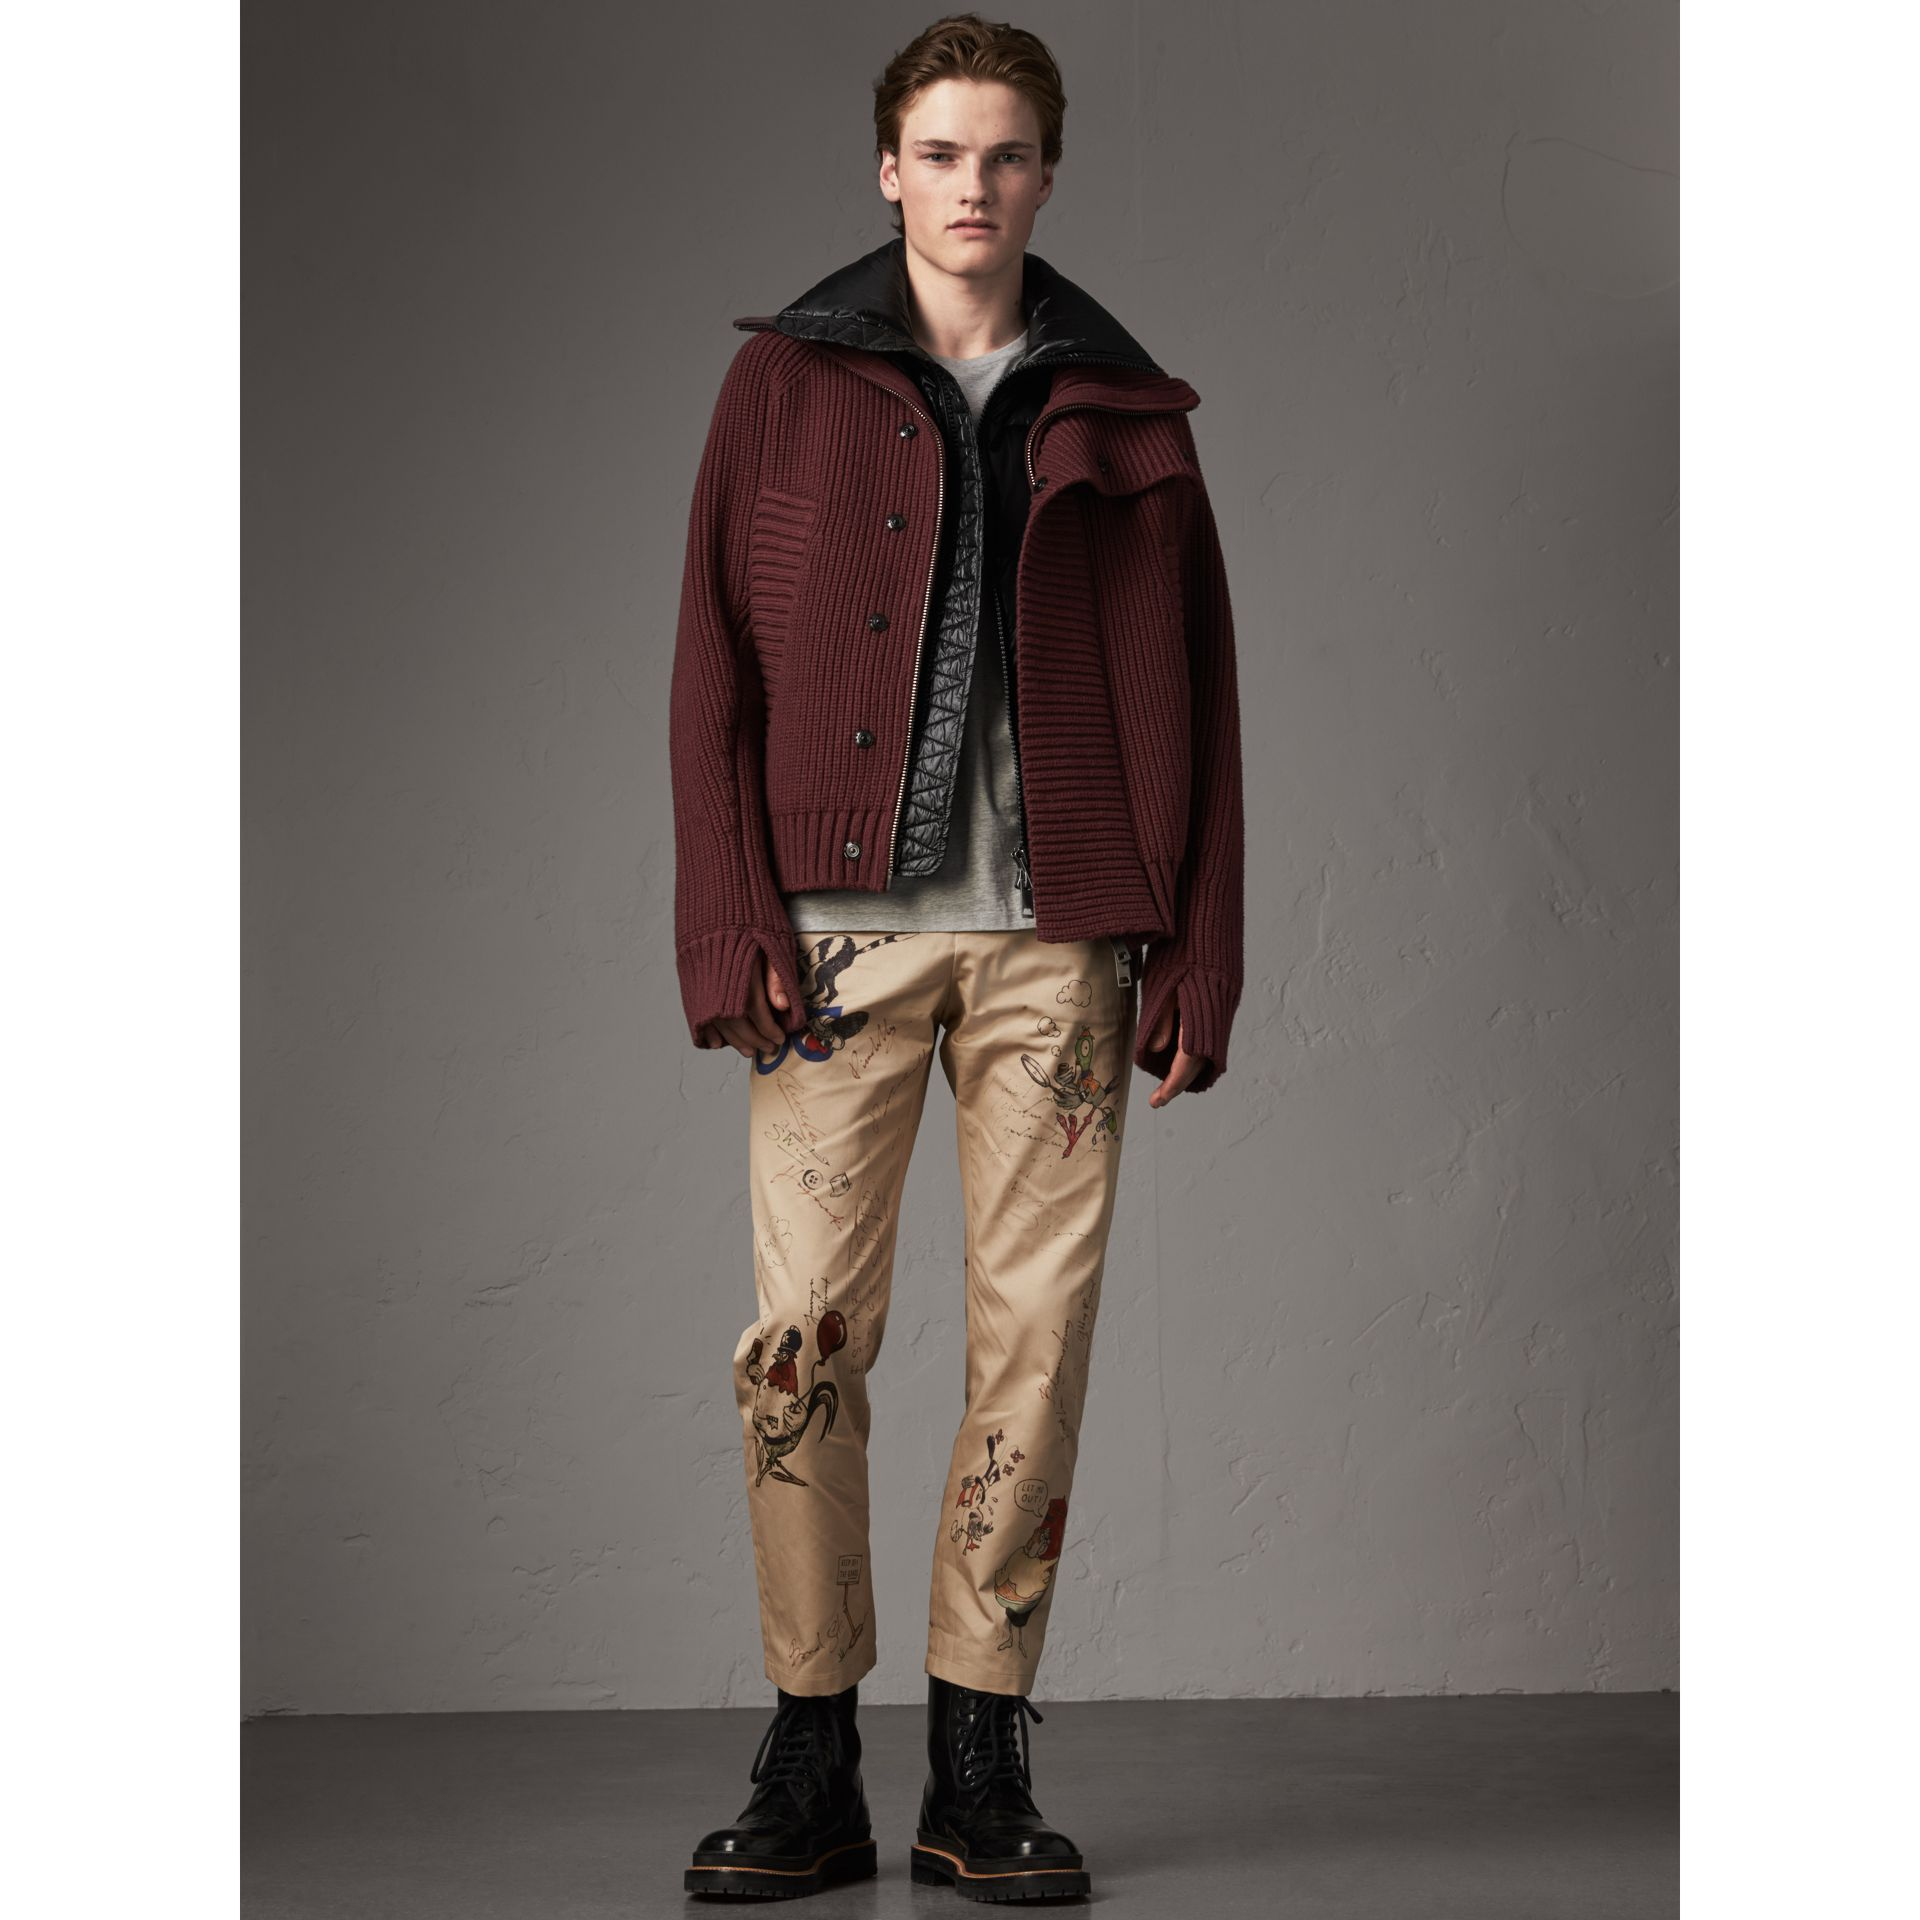 Rib Knit Cotton Blend Jacket with Down-filled Gilet in Mahogany Red - Men | Burberry - gallery image 5